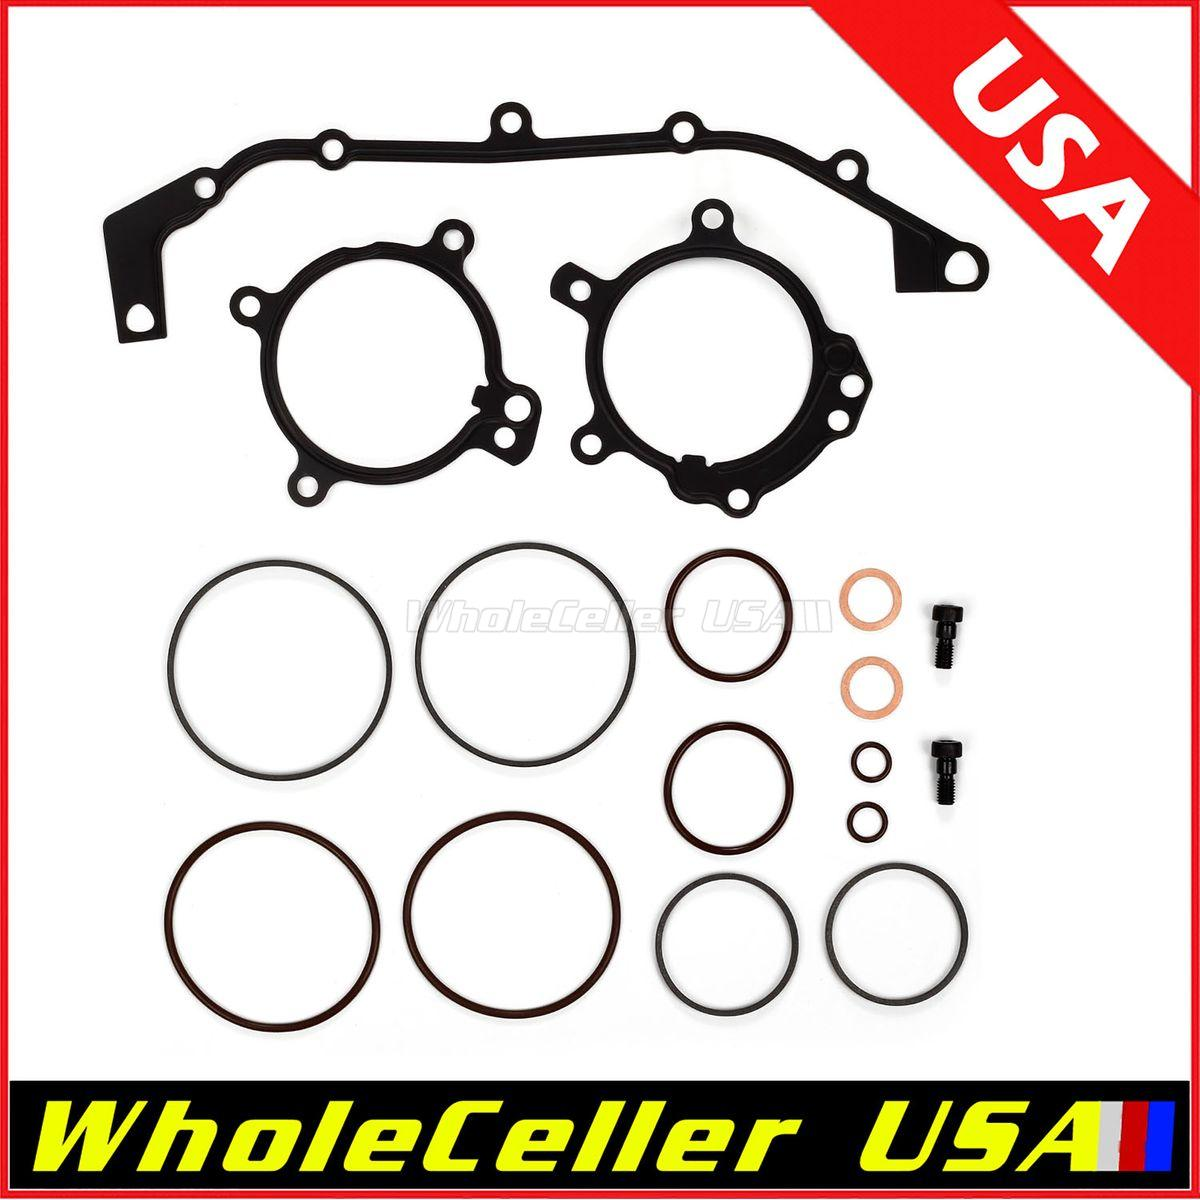 Vanos O Ring Seal Repair Kit Fits Bmw 98 05 3 Series E36 Z3 98 02 E46 M52tu M5 Ebay